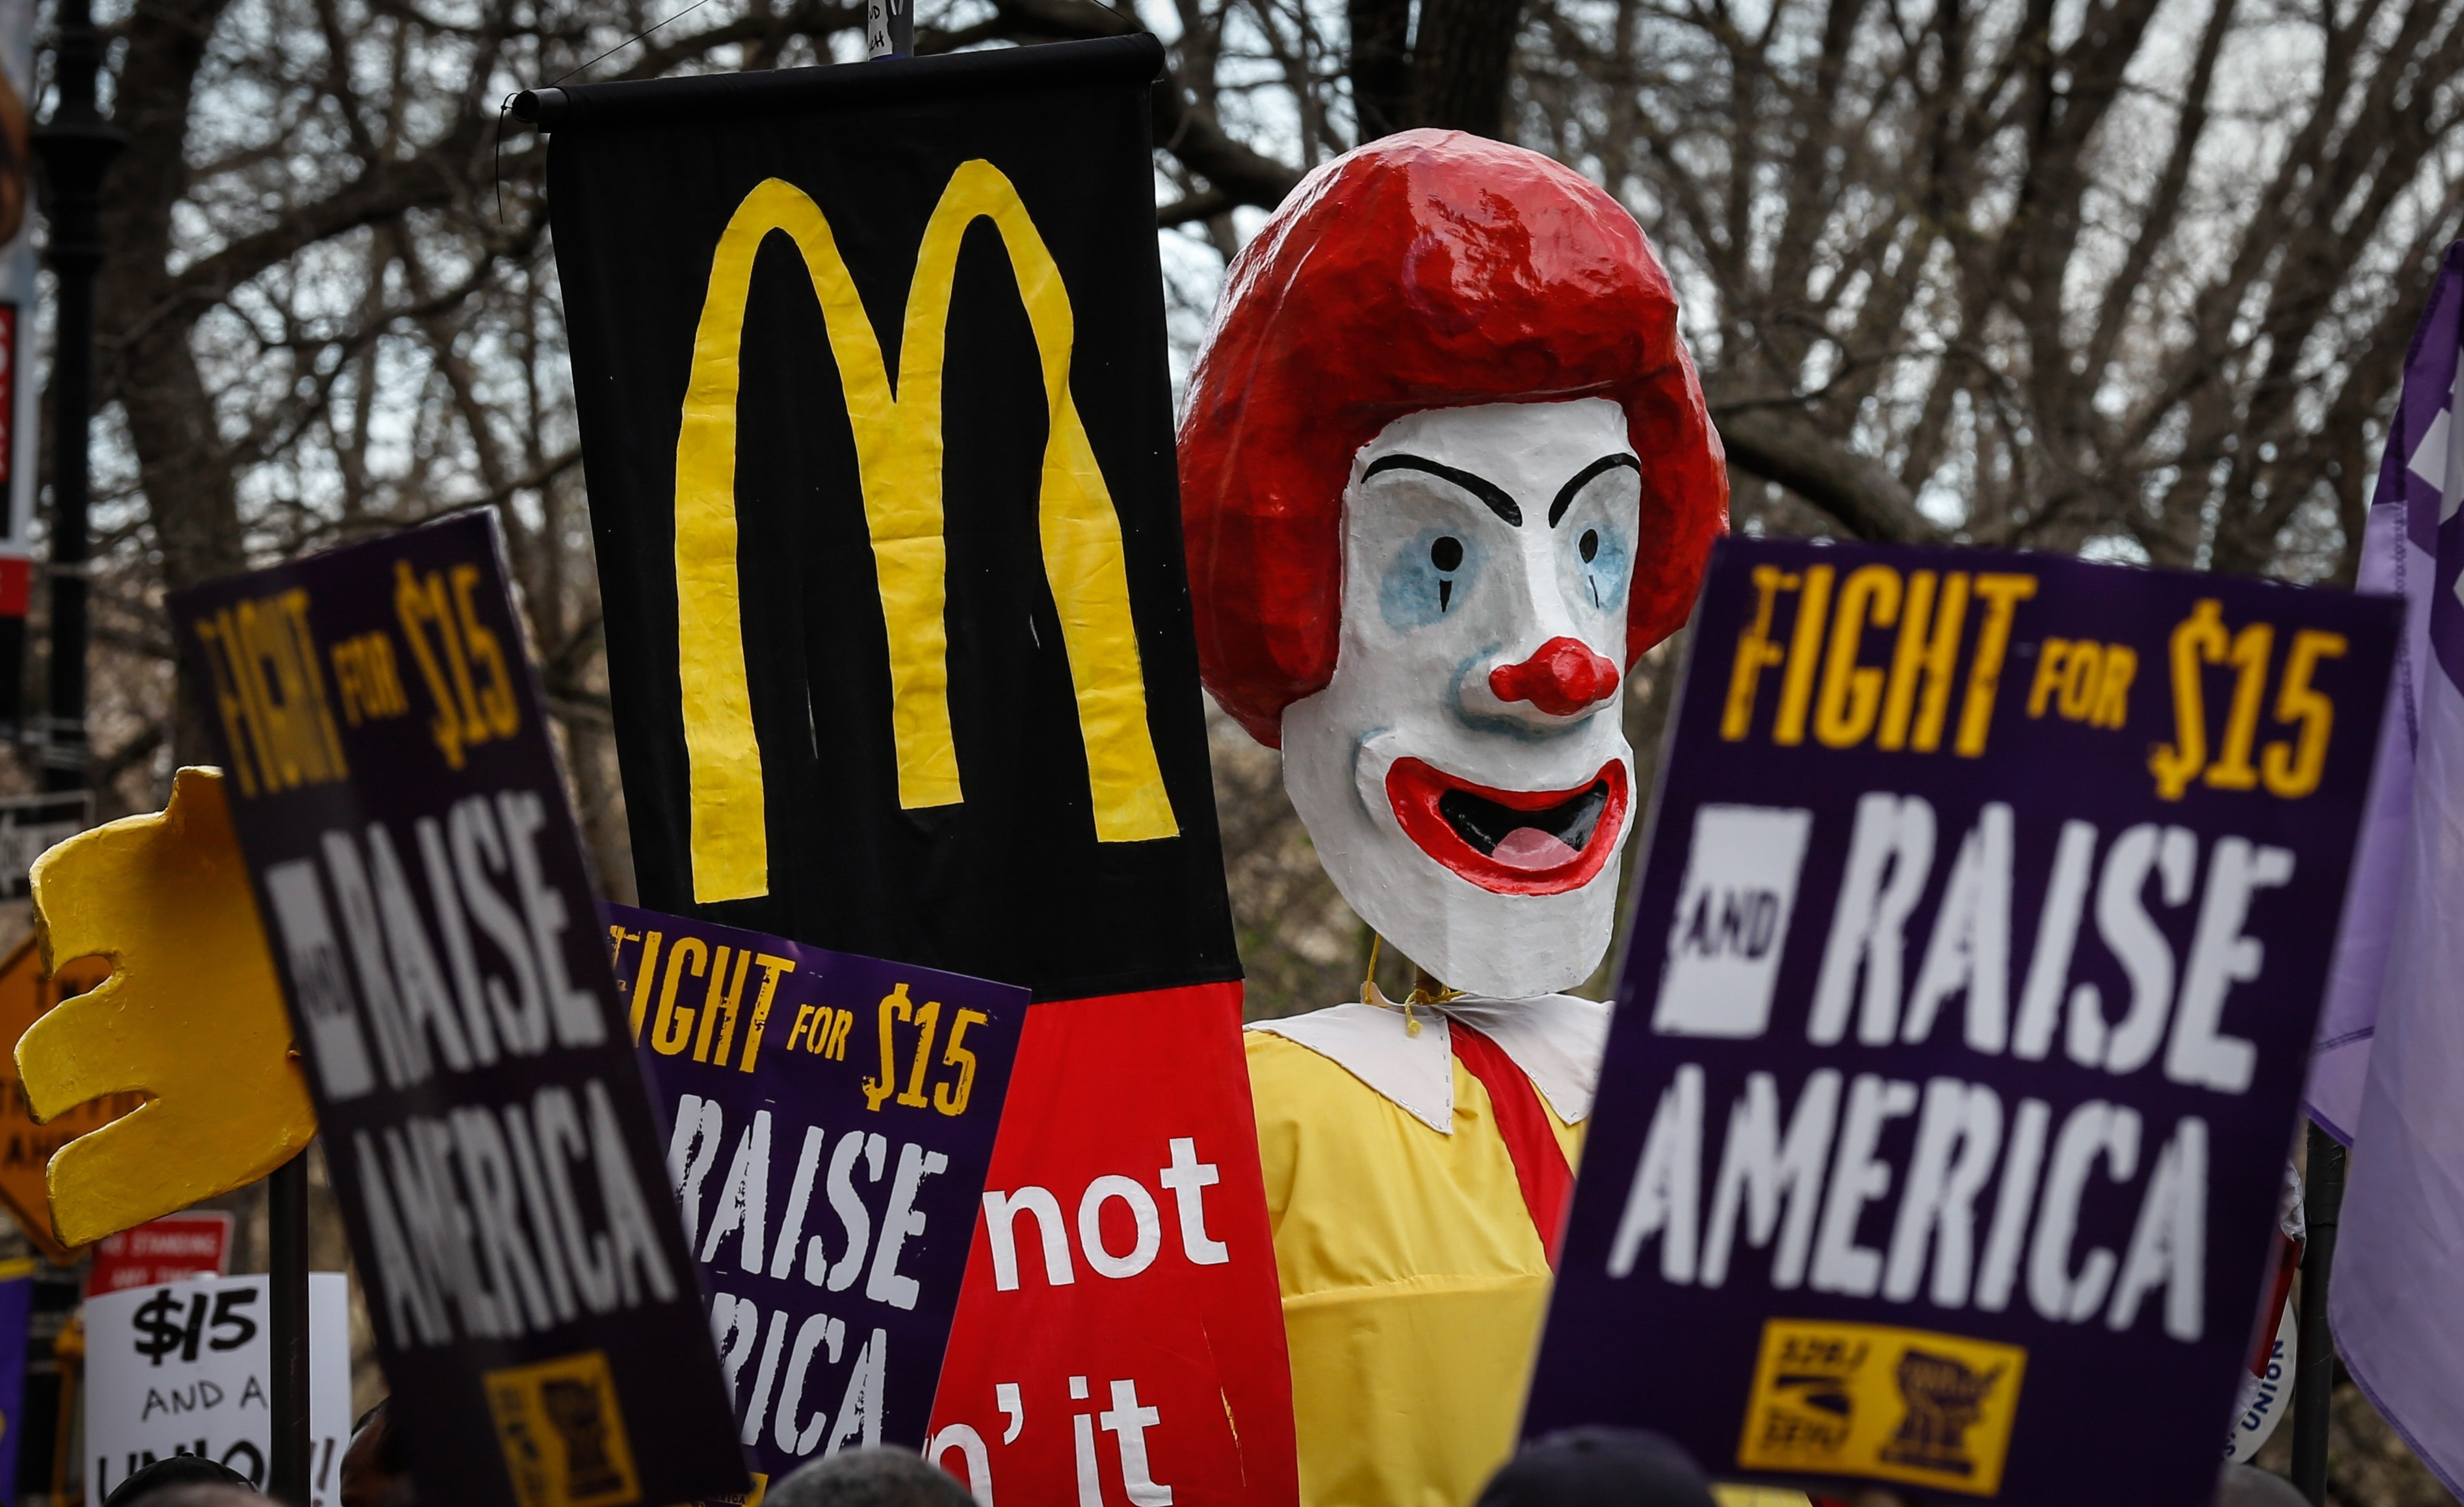 Hillary Clinton Backs 'Fight for 15' and Underpaid Fast Food Workers